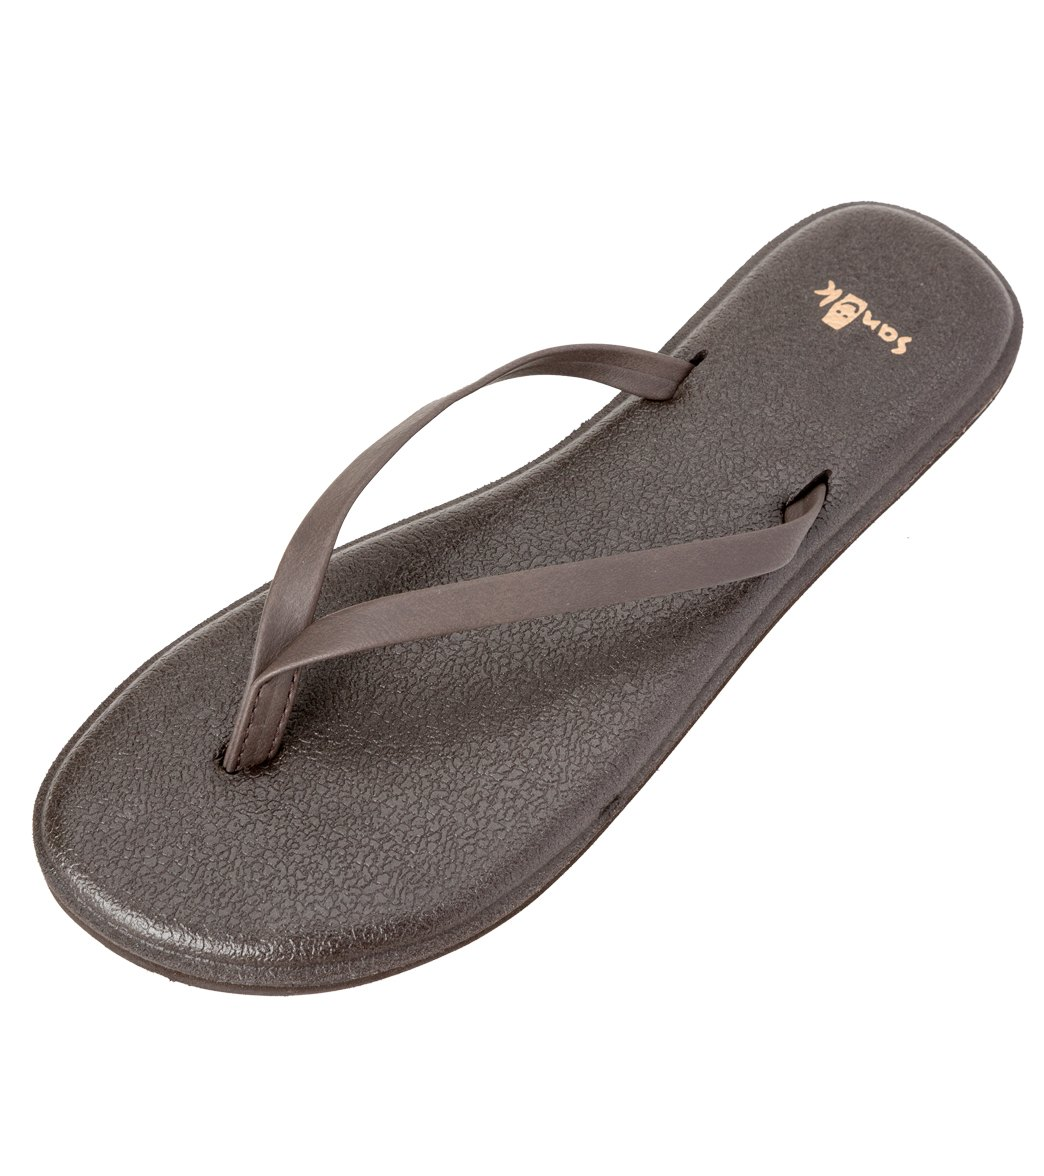 Sanuk Yoga Bliss Sandal